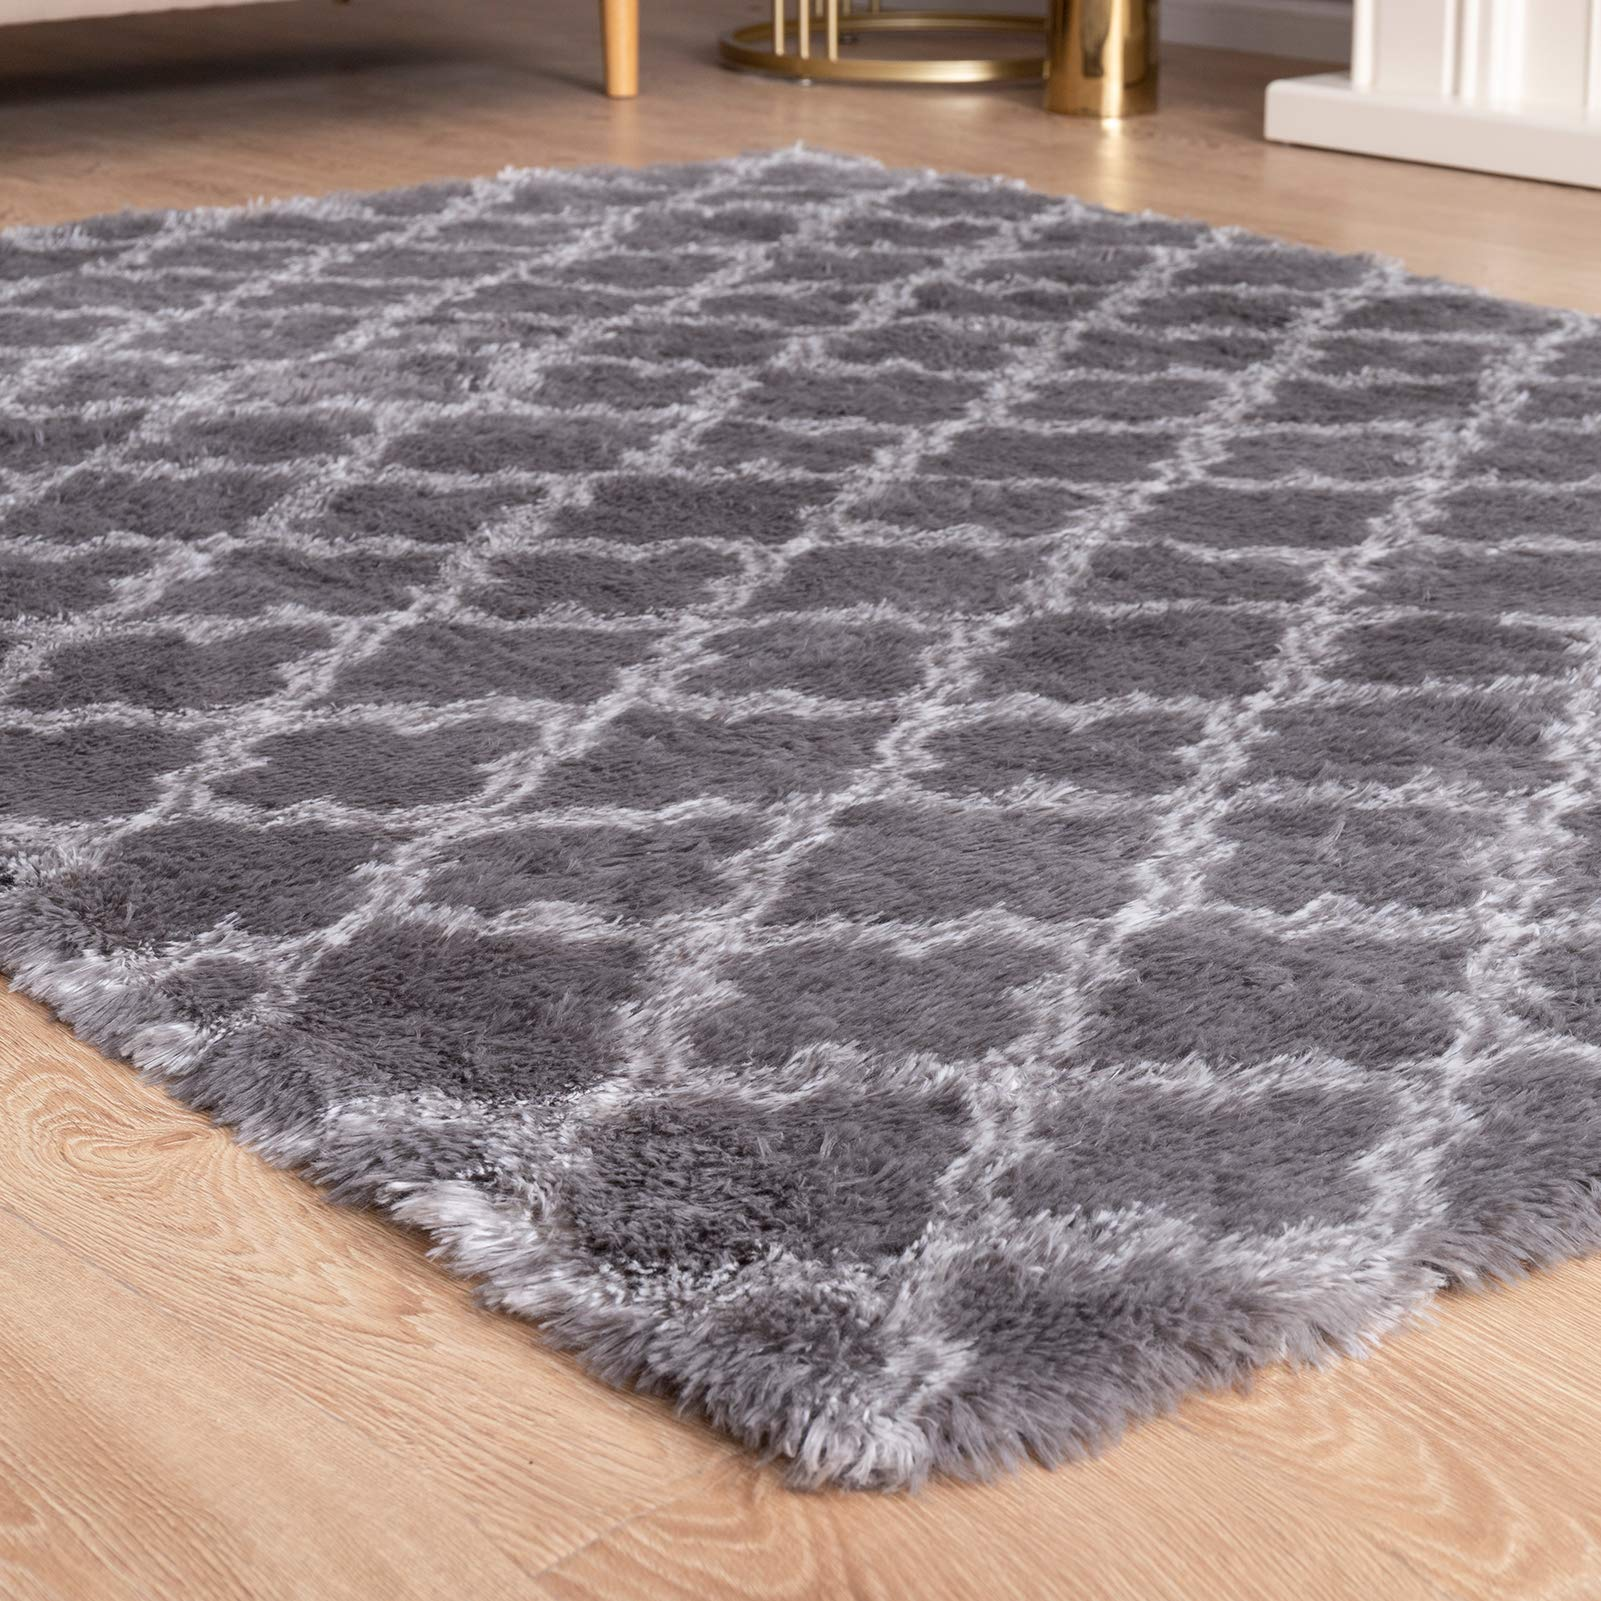 Carvapet Super Soft Moroccan Area Rugs for Bedroom Living Room Shaggy Modern